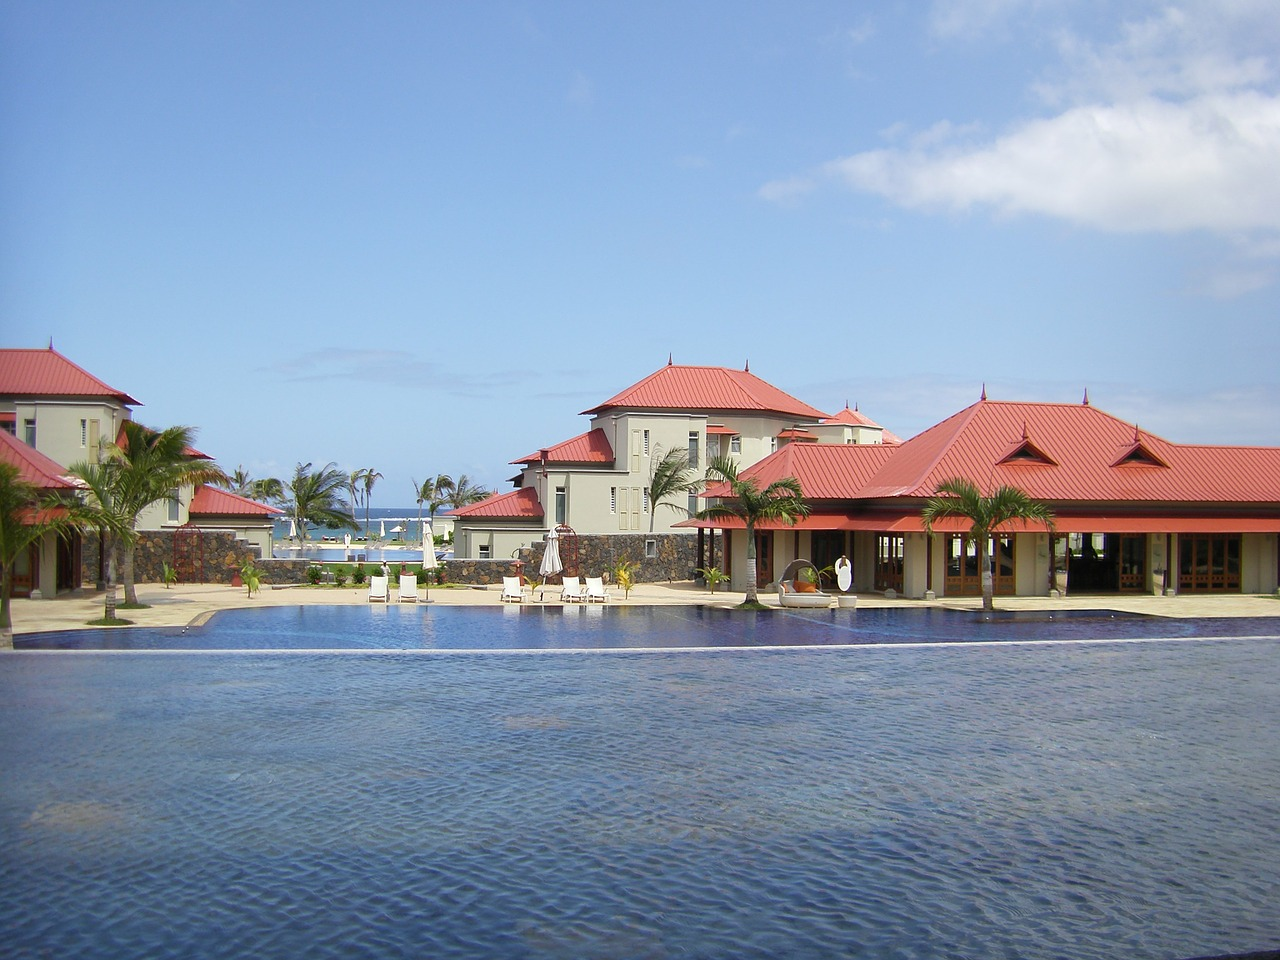 mauritius hotel pool free photo